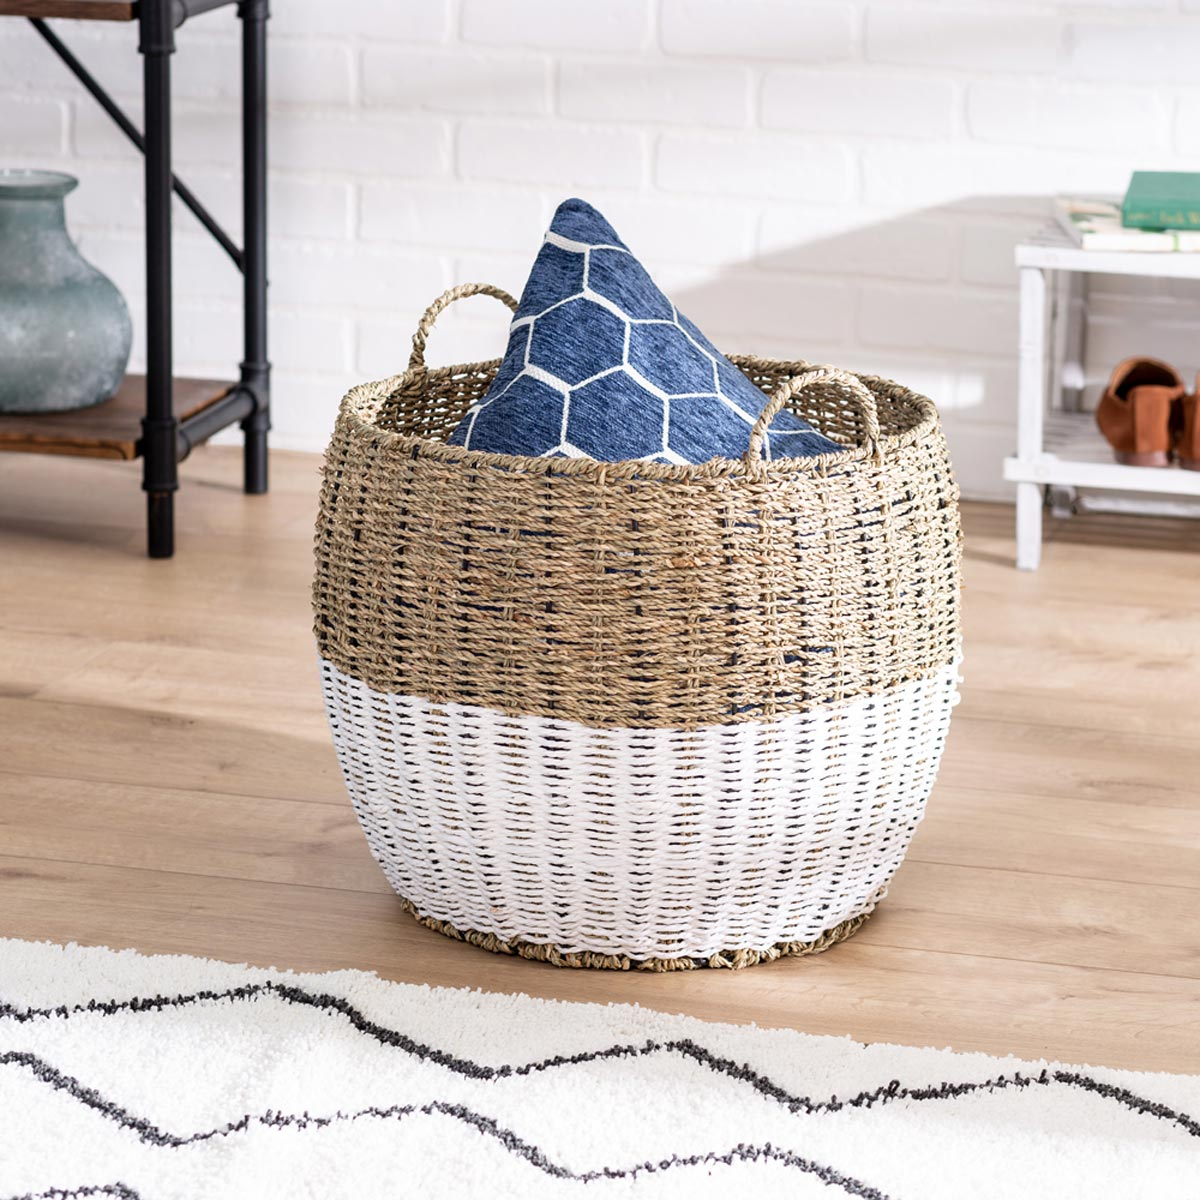 16 in. x 14 in. Natural/White Seagrass Round Storage Basket with Handles, Large